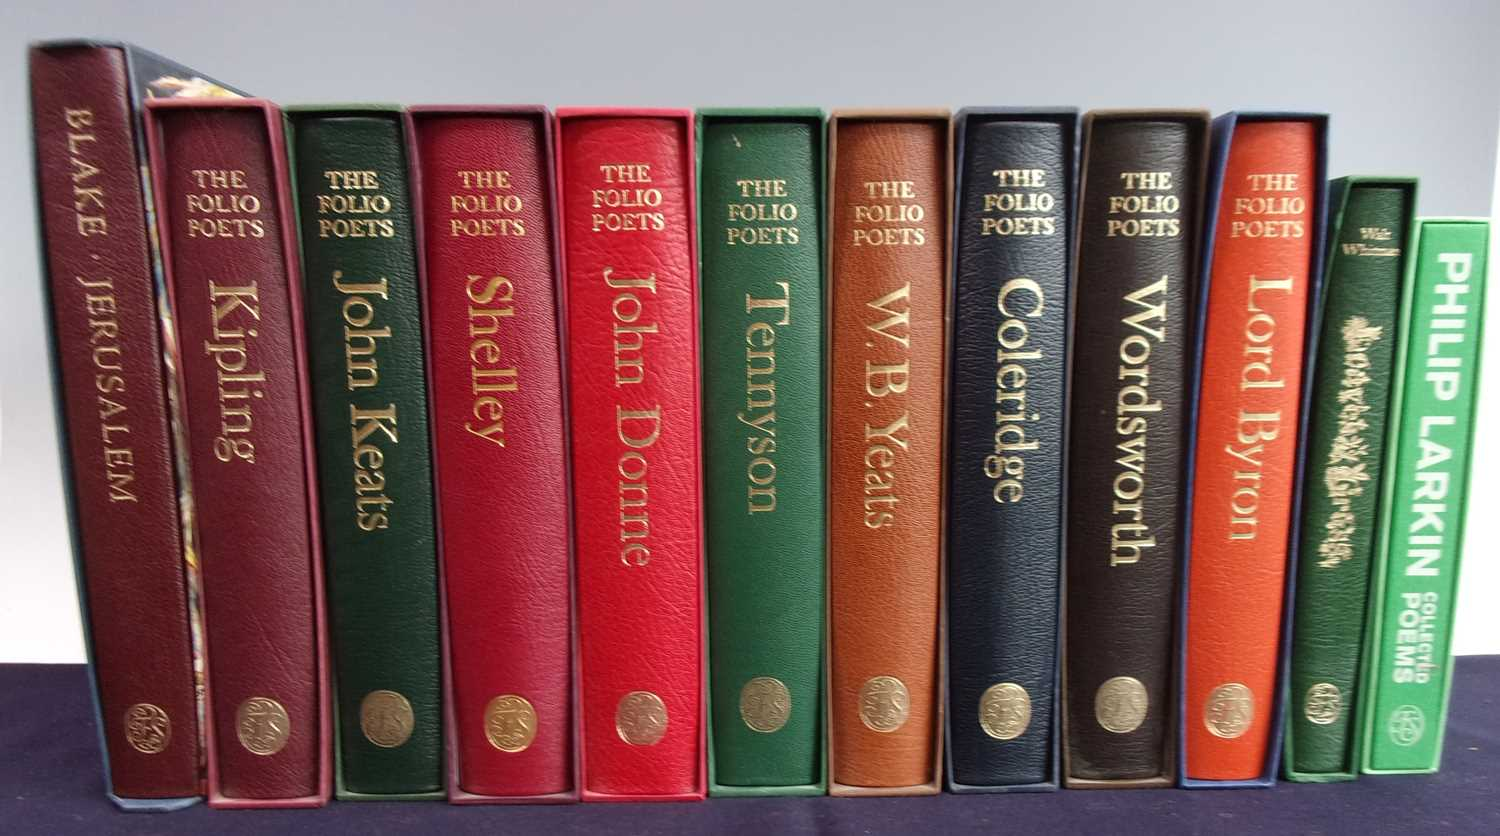 A Collection of Folio Society Poets to include Keats, Tennyson, Shelley and others. Folio Society,